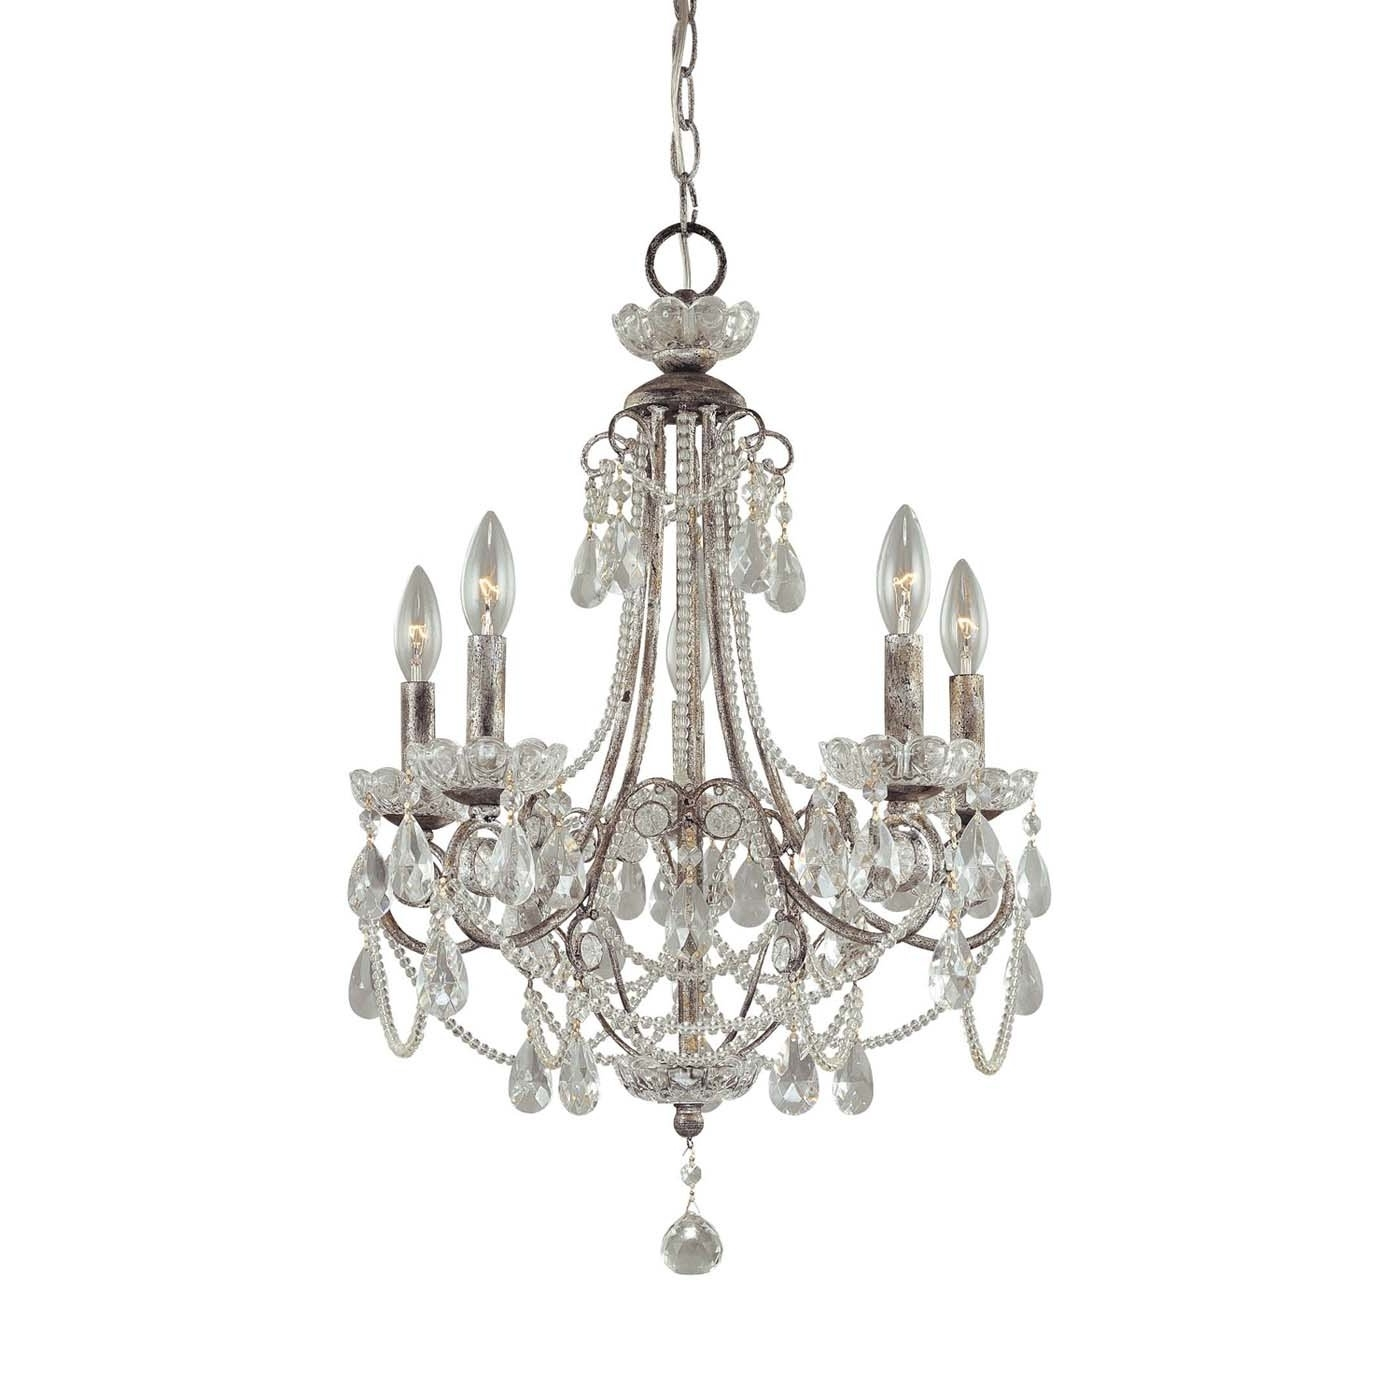 Chandelier: Extraordinary Small Chandeliers For Bedrooms Mini Pertaining To 2018 Mini Crystal Chandeliers (View 17 of 20)